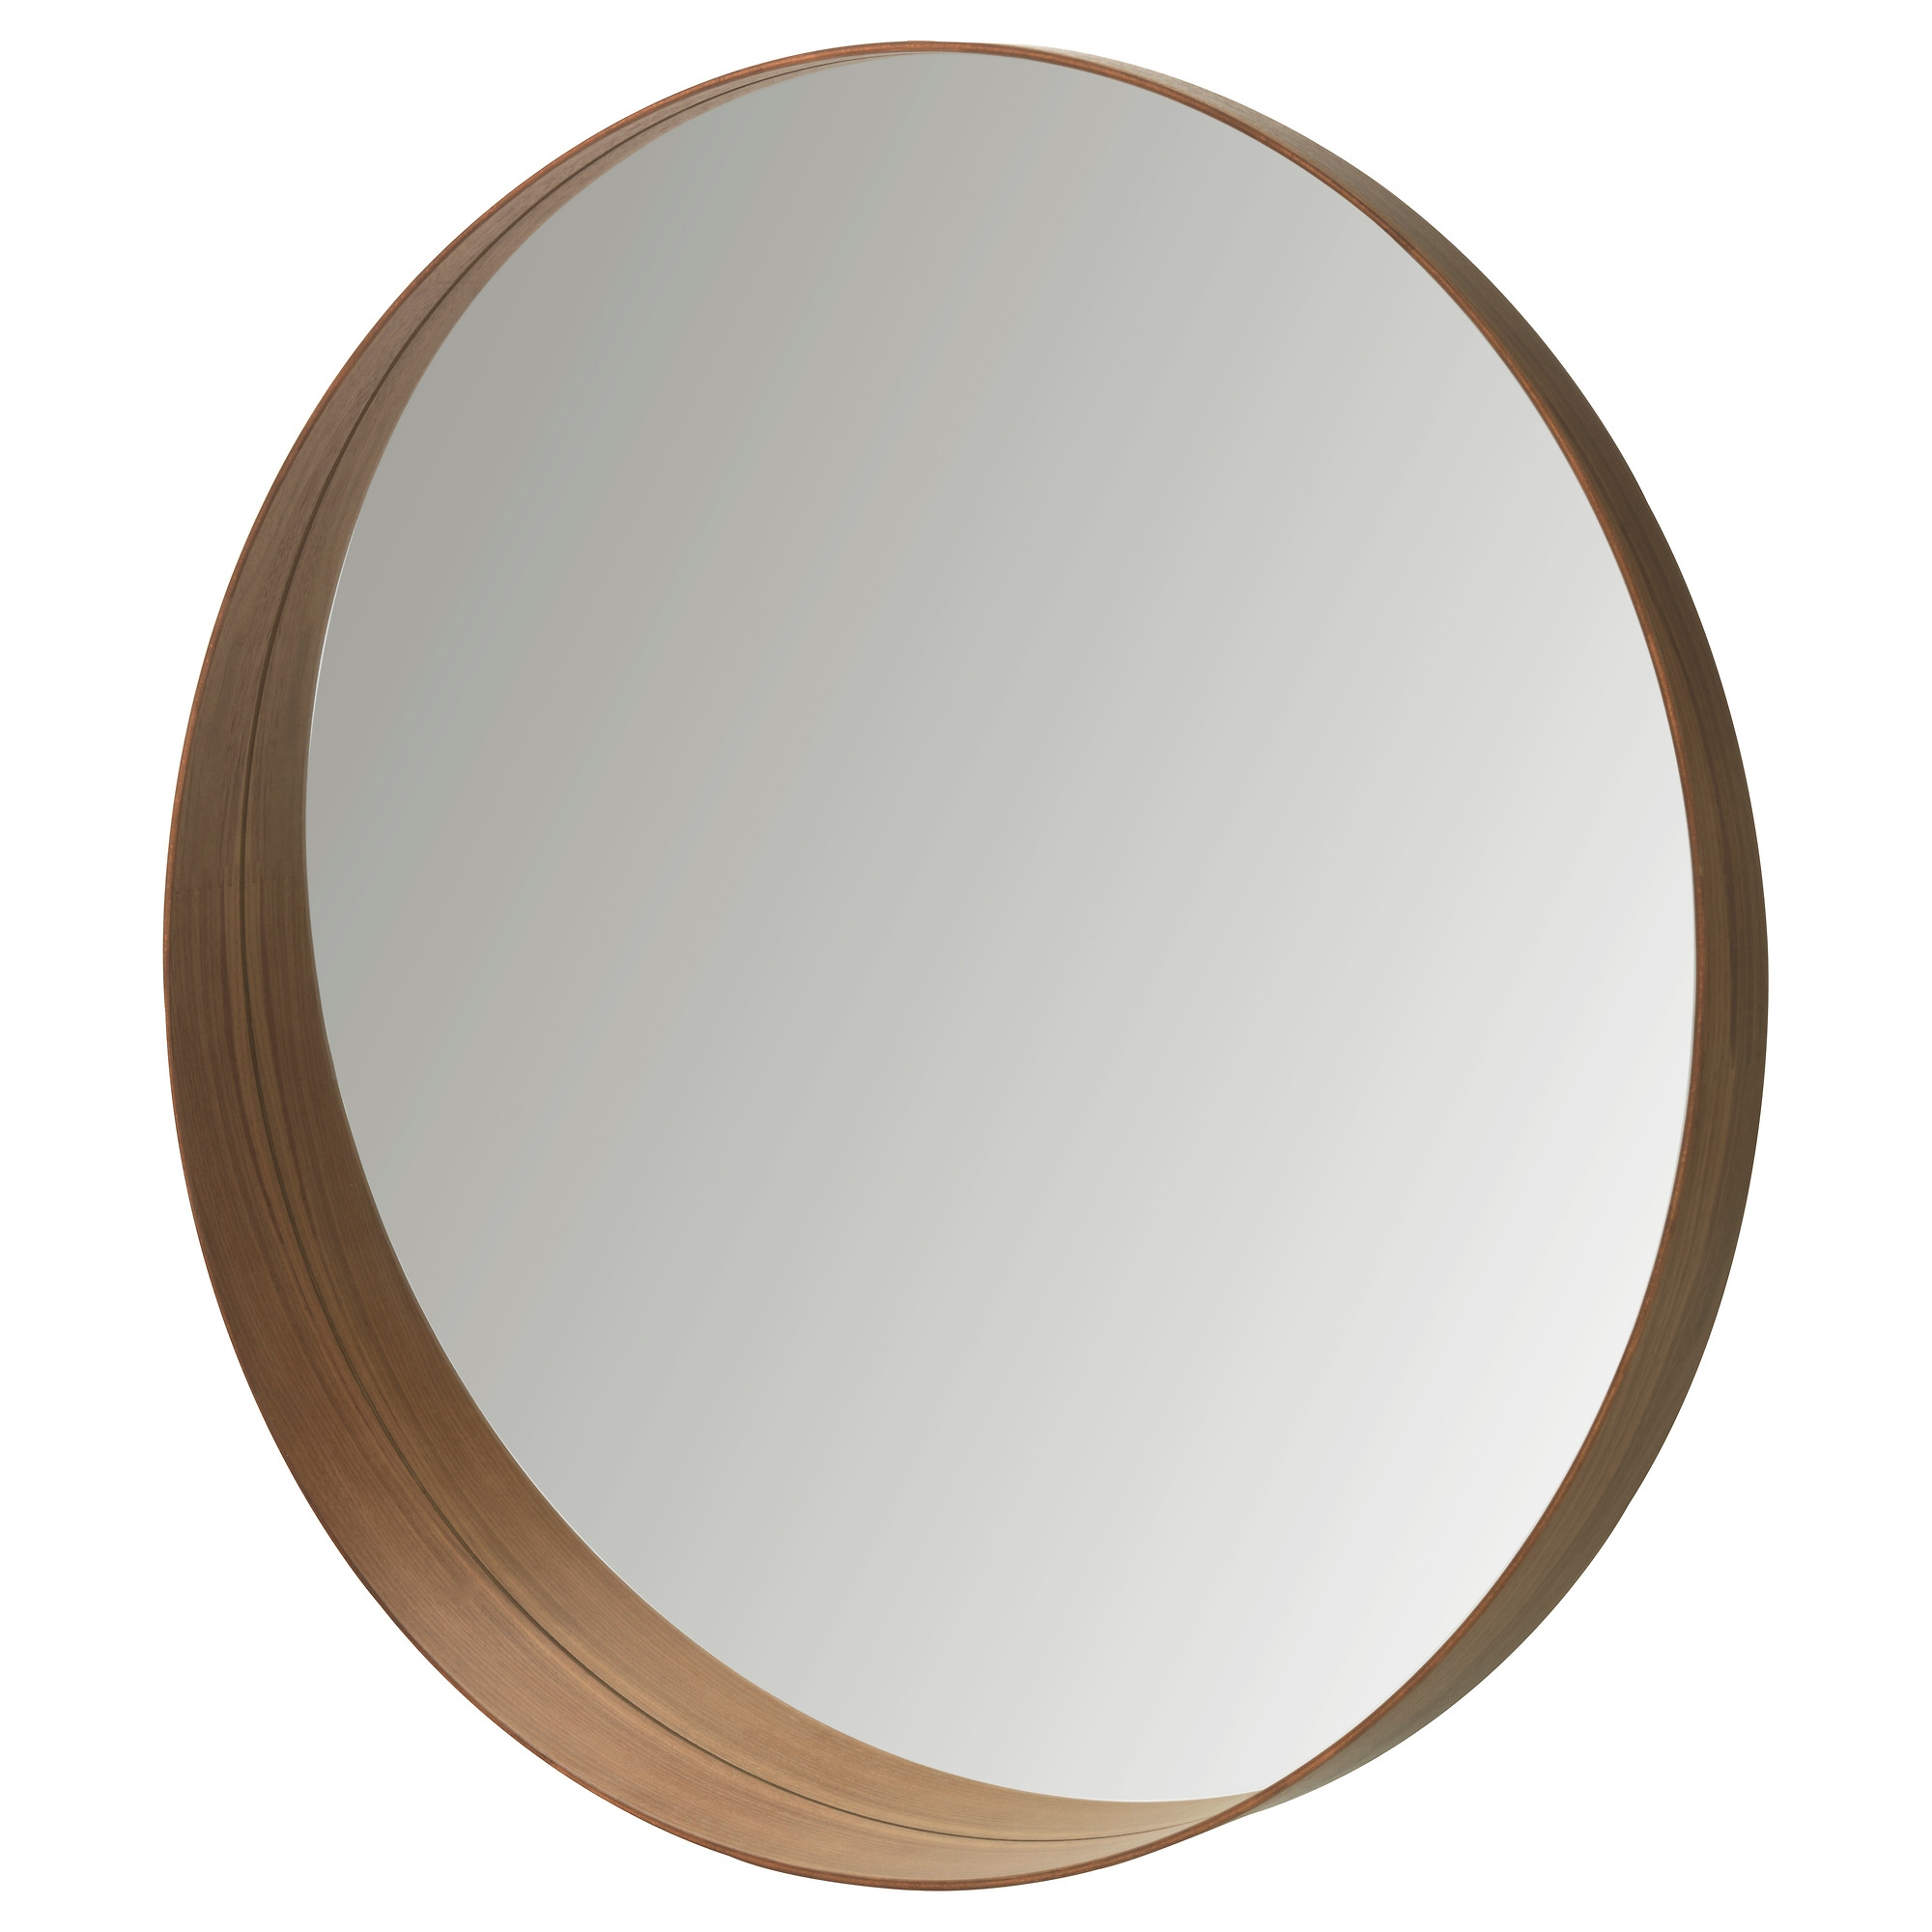 Stockholm Mirror Ikea With Regard To Round Mirrors For Sale (Image 12 of 15)